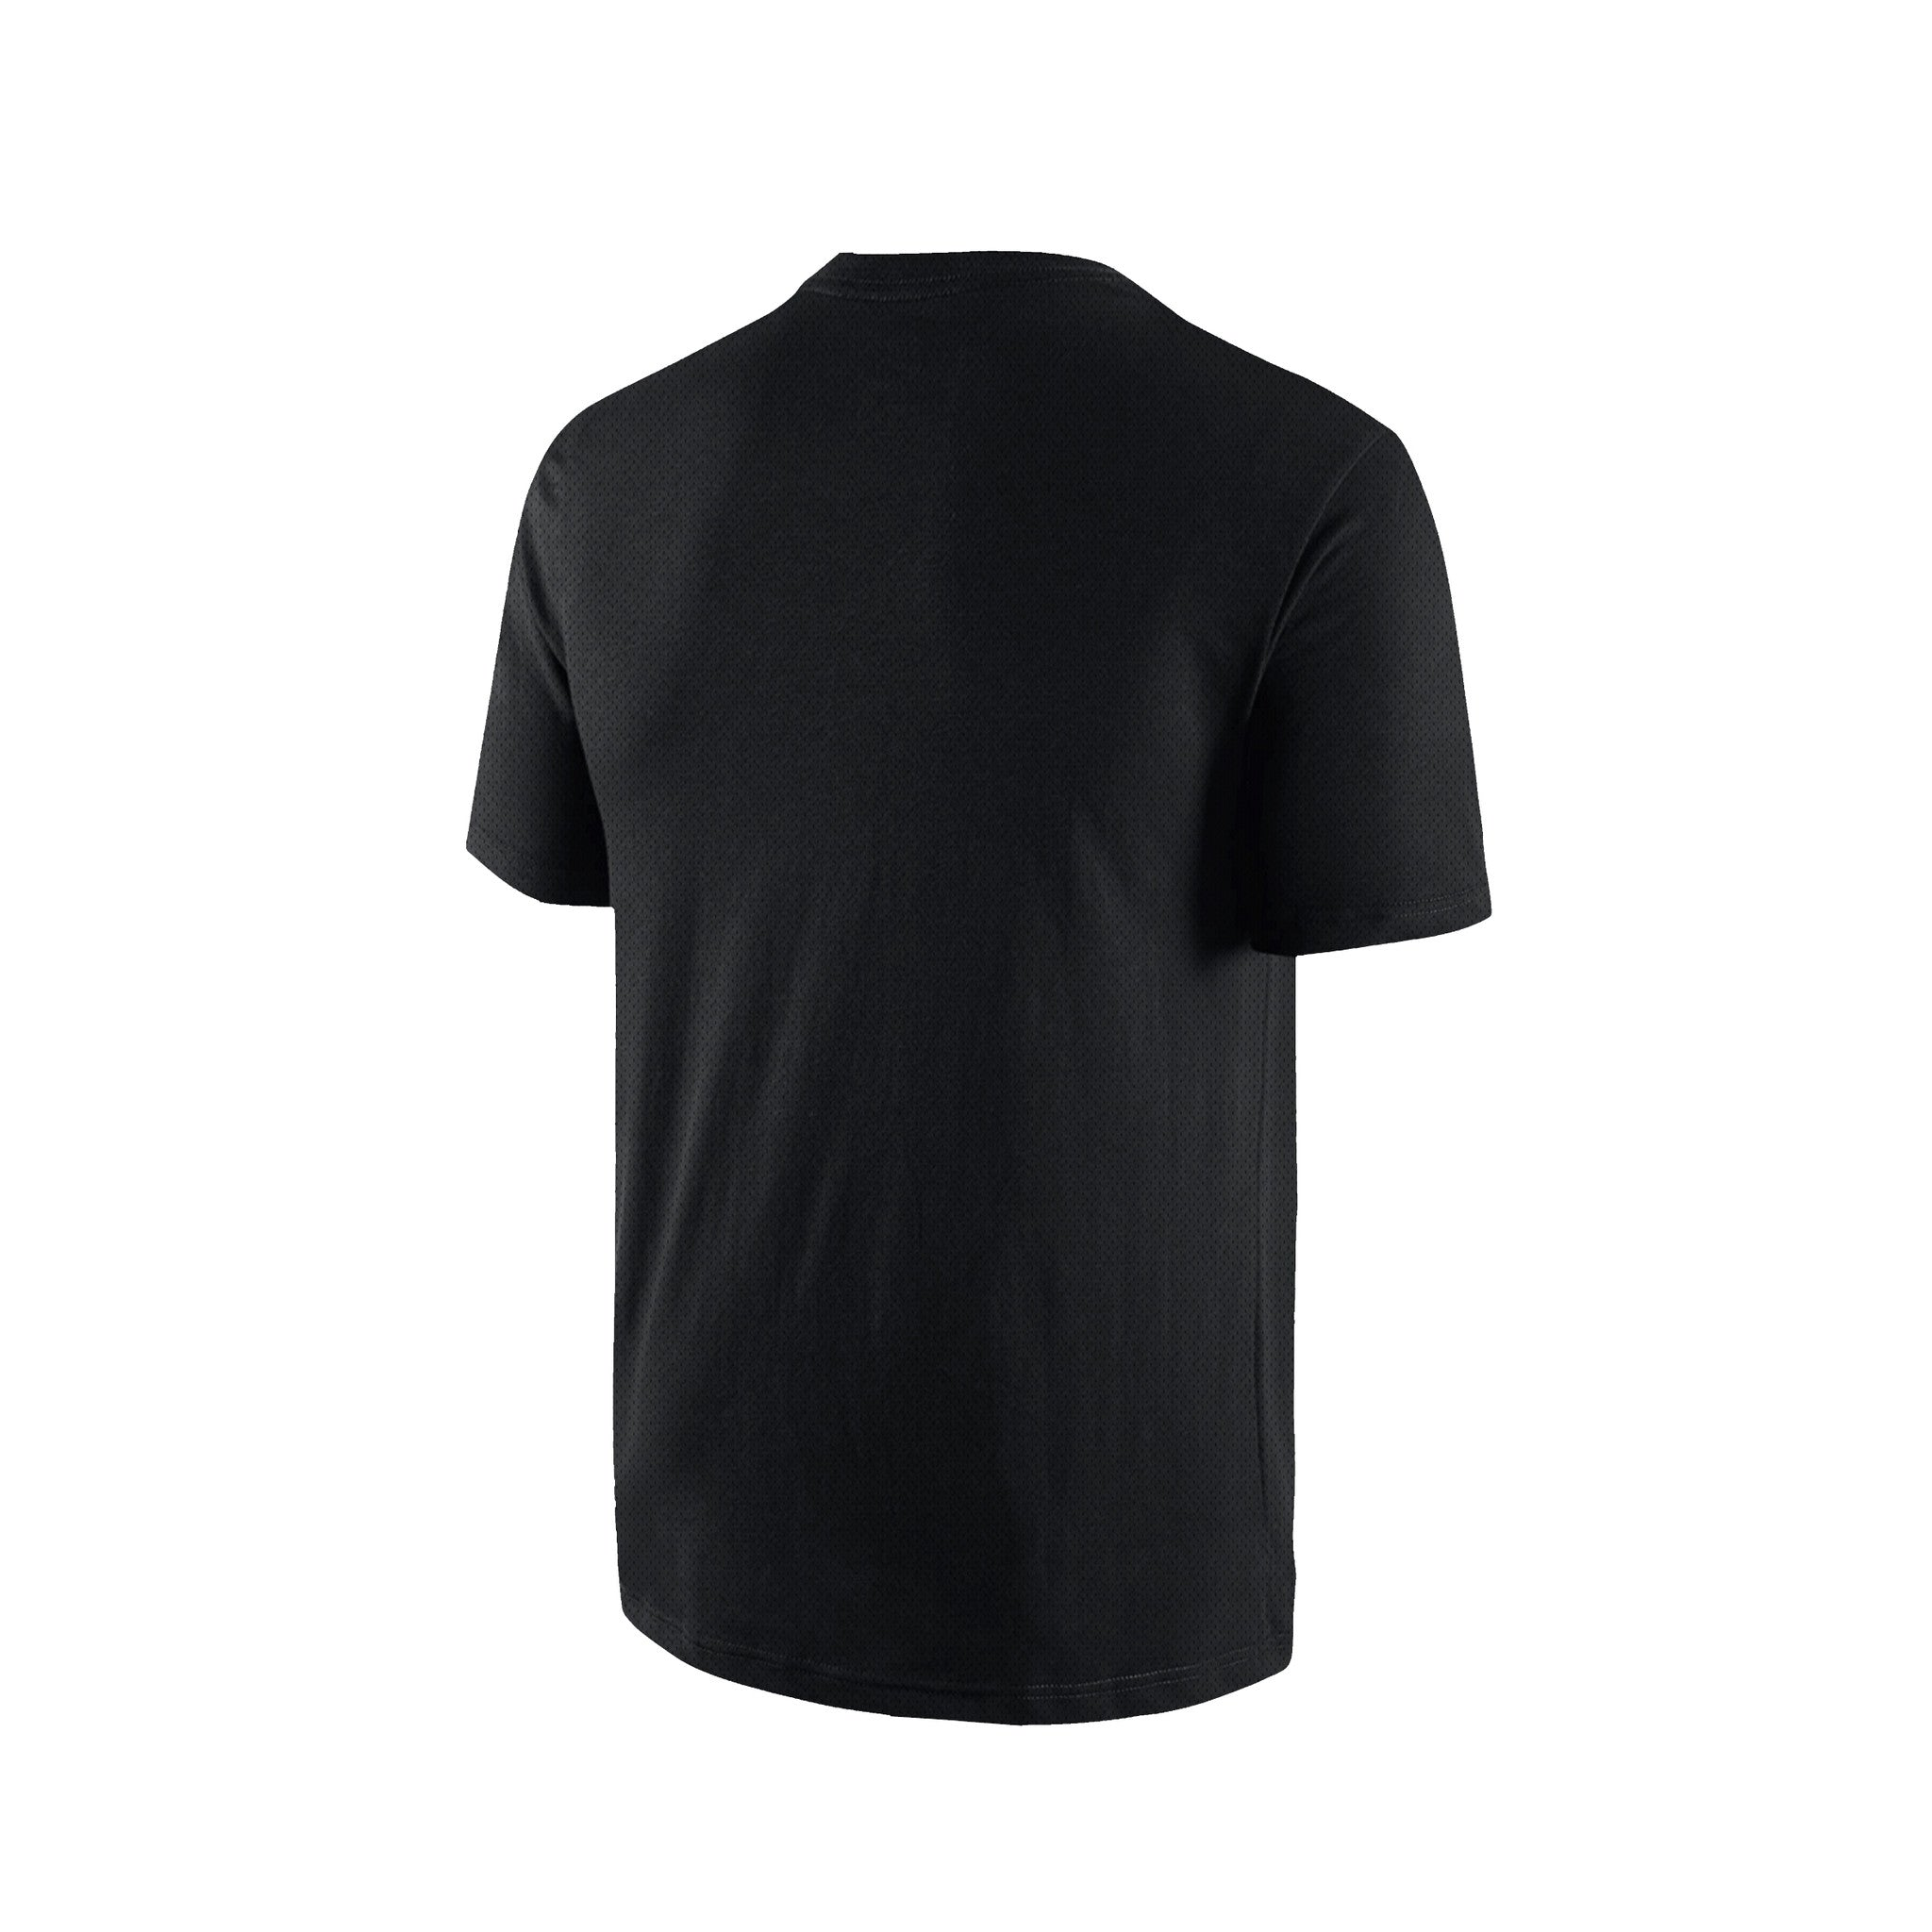 SportyFish Black Series black t-shirt: Grouper back view